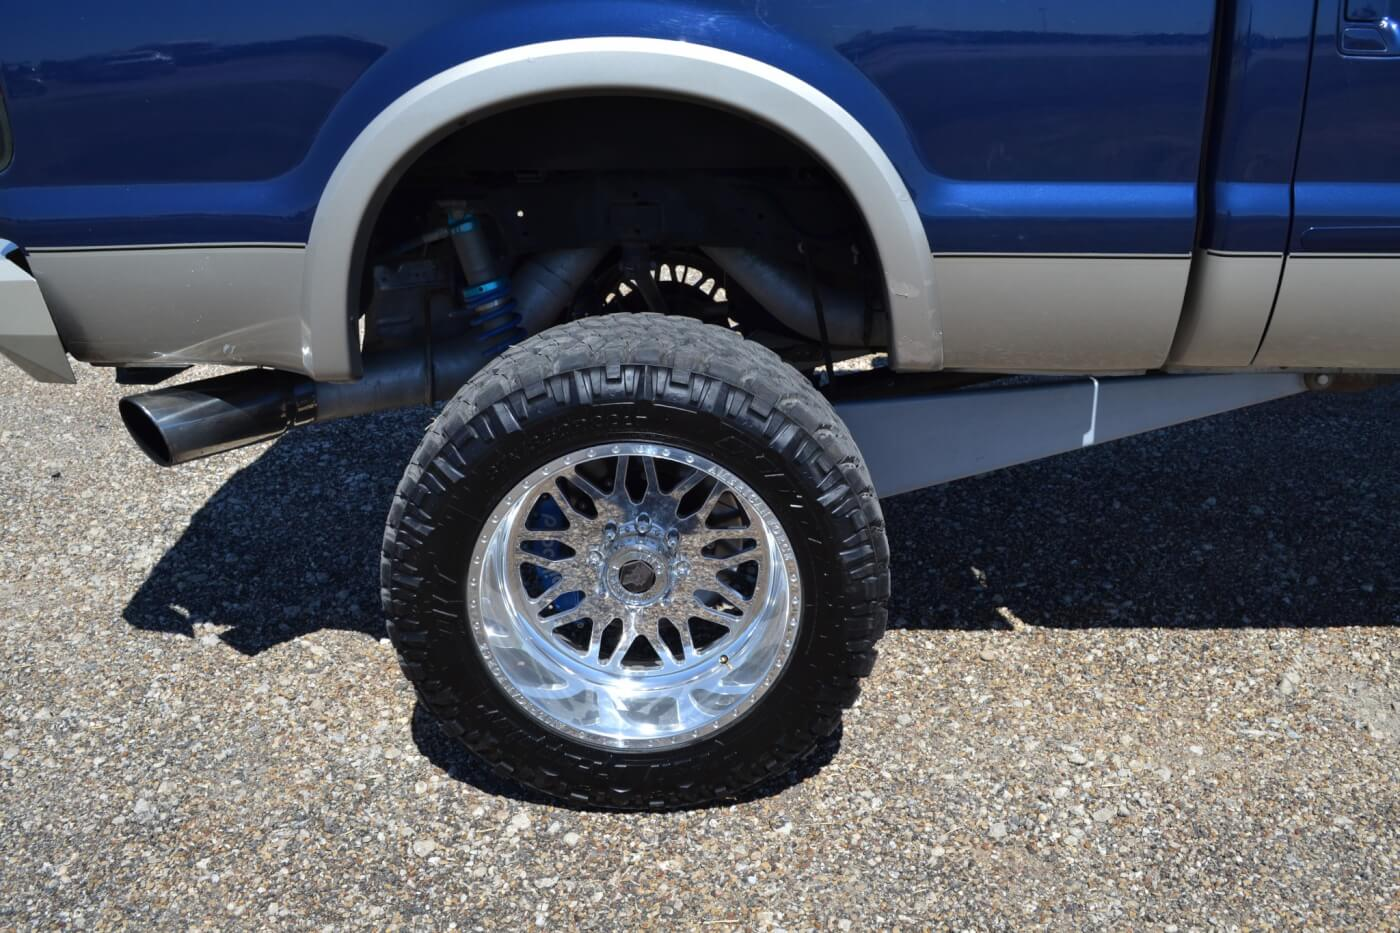 While it might look like the truck has enormous traction bars, the links are actually part of the four-link suspension that provides 8 inches of lift. The rear leaves have been removed completely, and instead, dampening is provided by King coilover shocks.